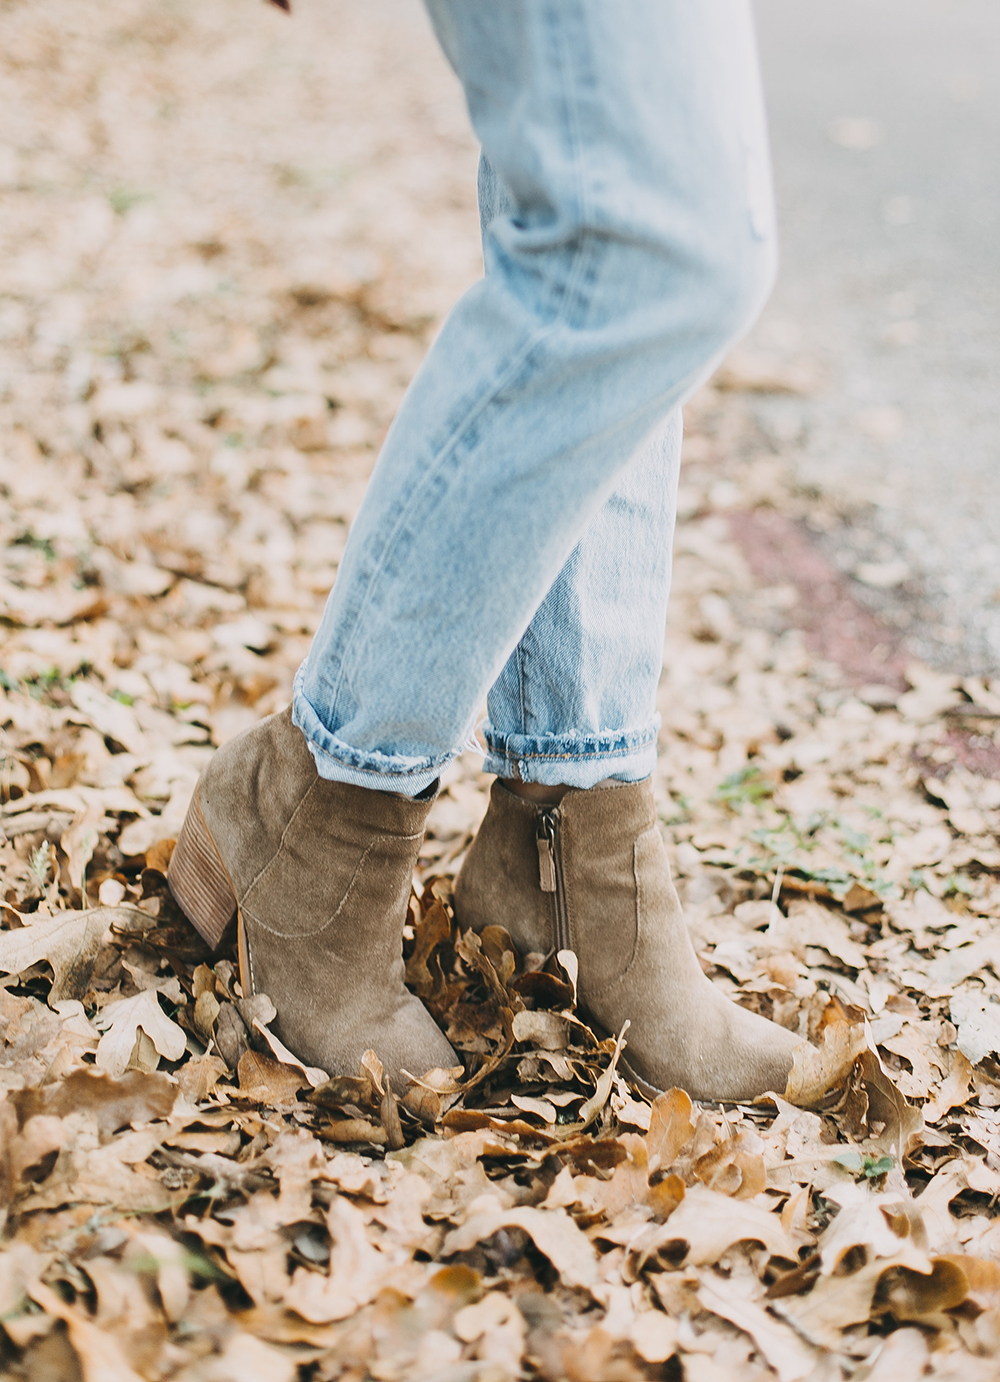 livvyland-blog-olivia-watson-levis-501-jeans-taupe-suede-ankle-booties-fall-outfit-5